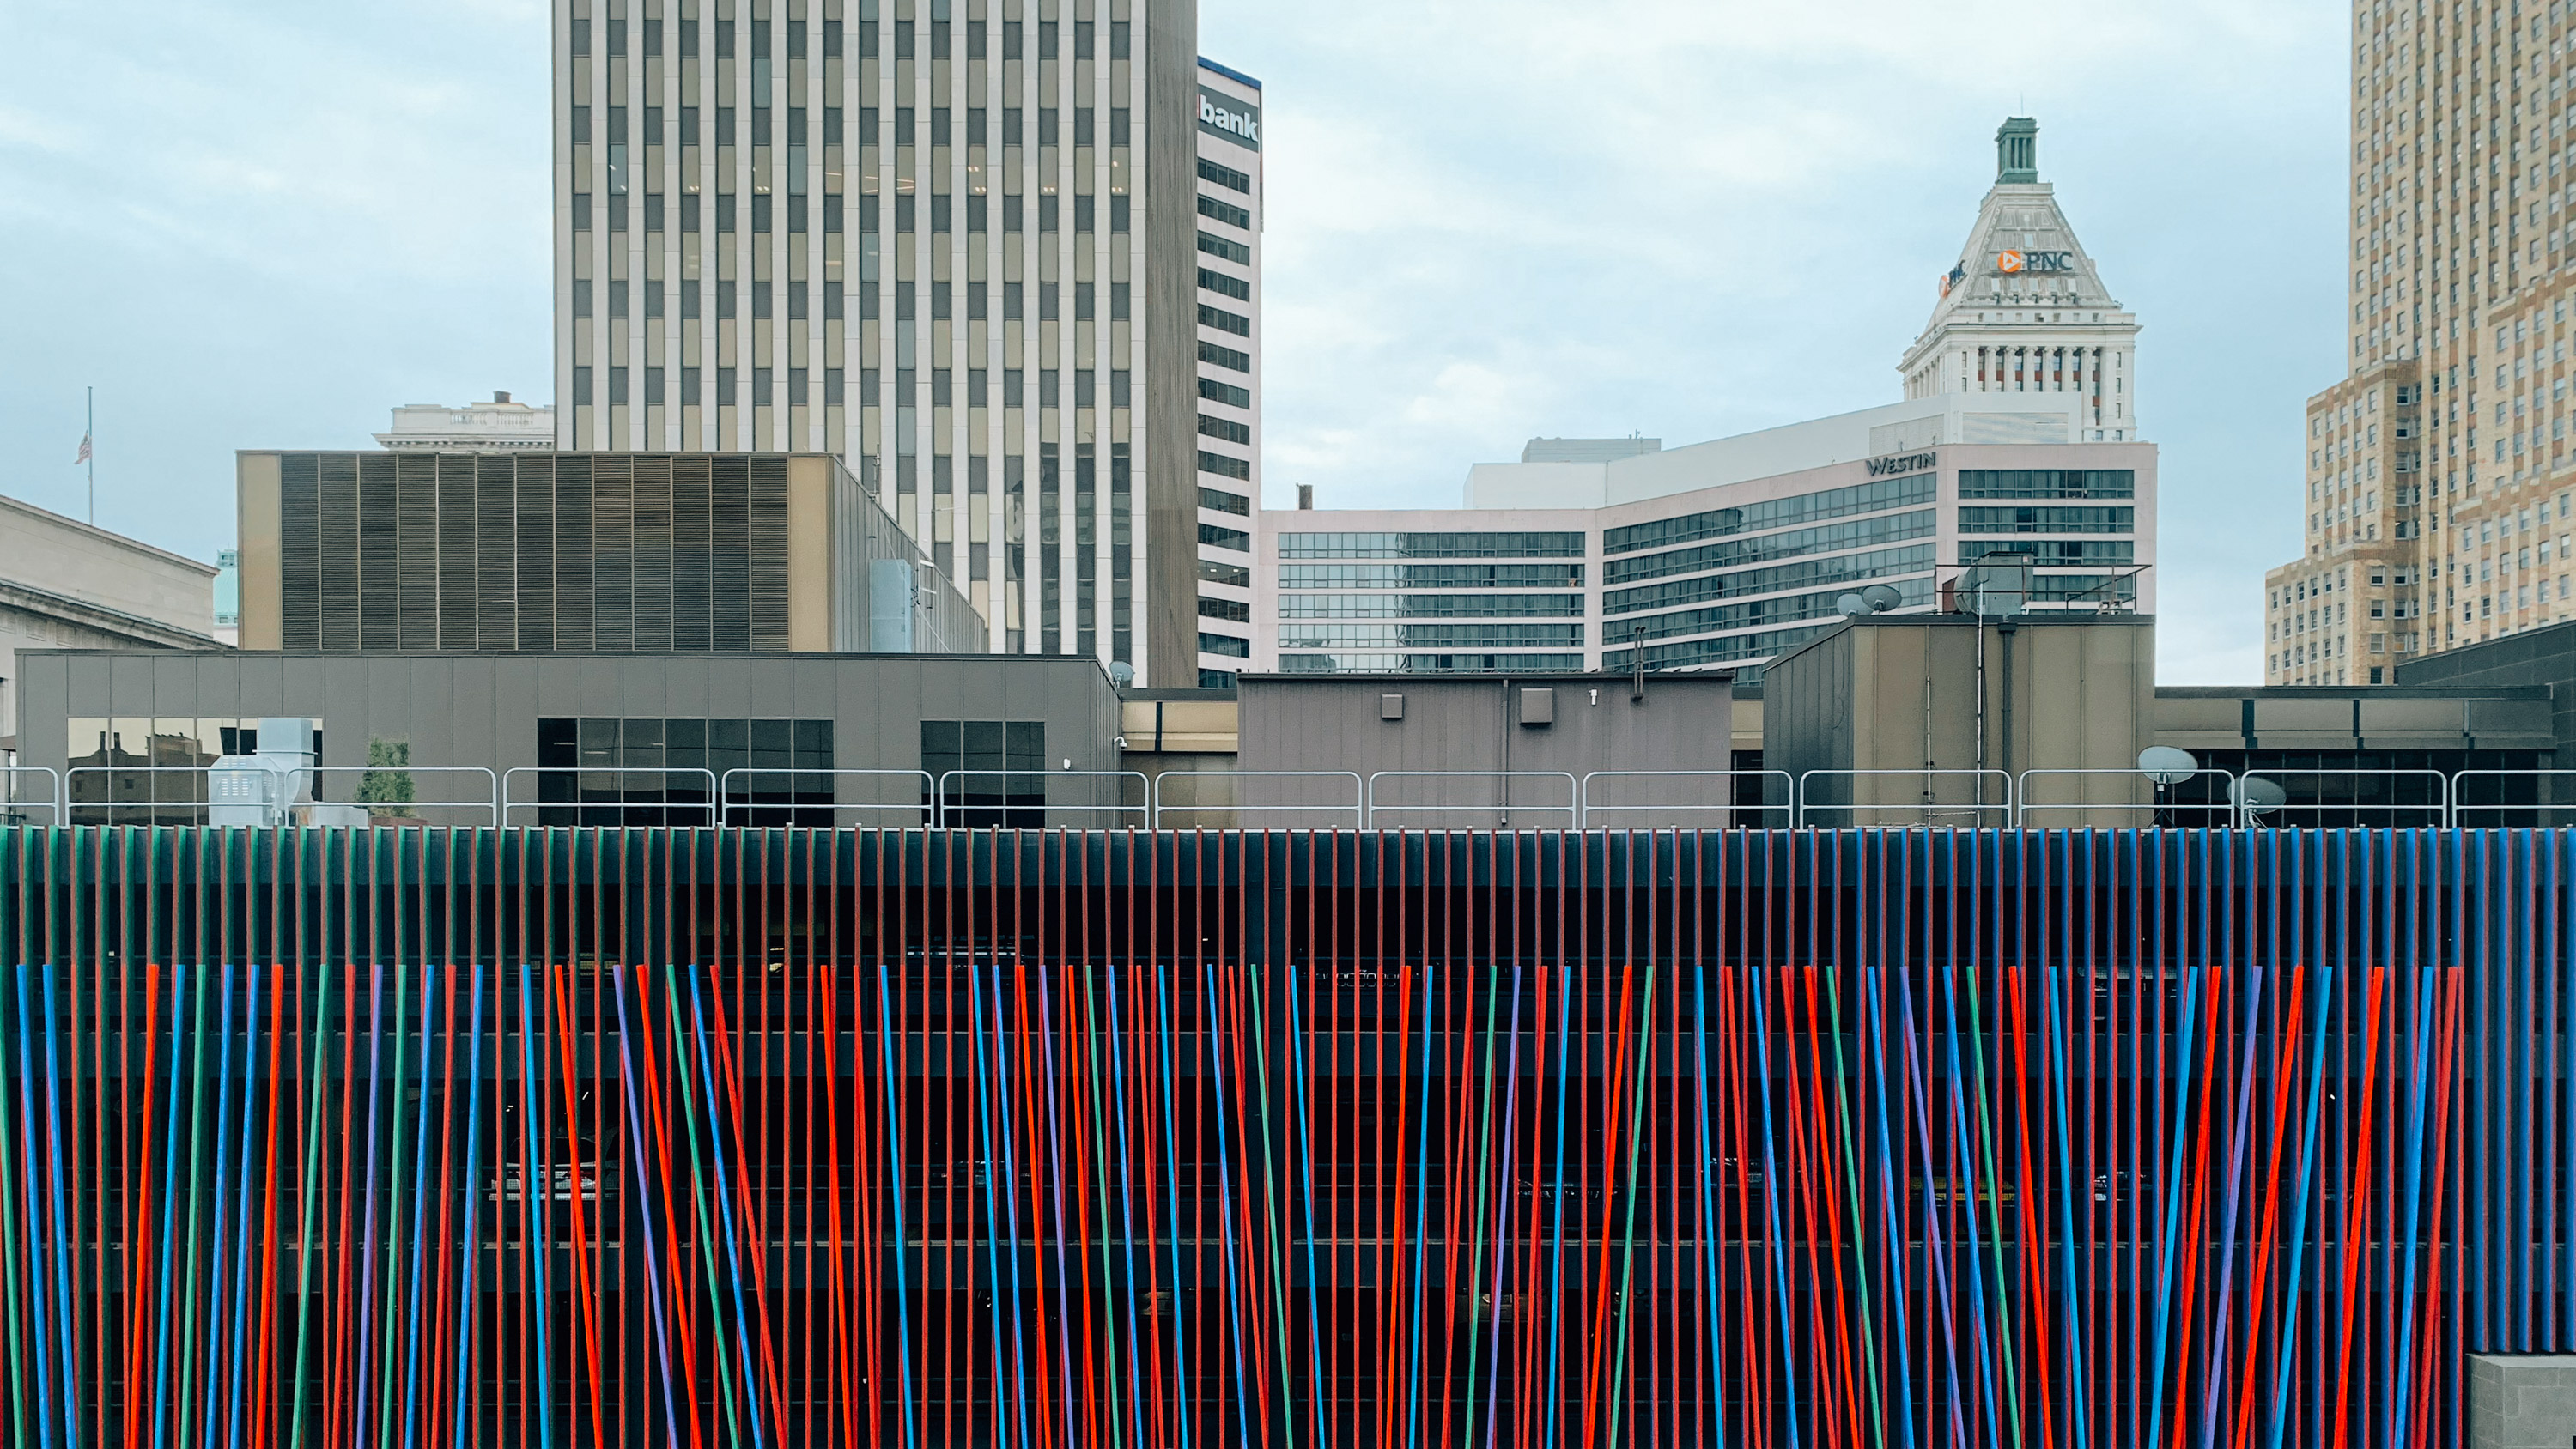 view from the Contemporary Arts Center